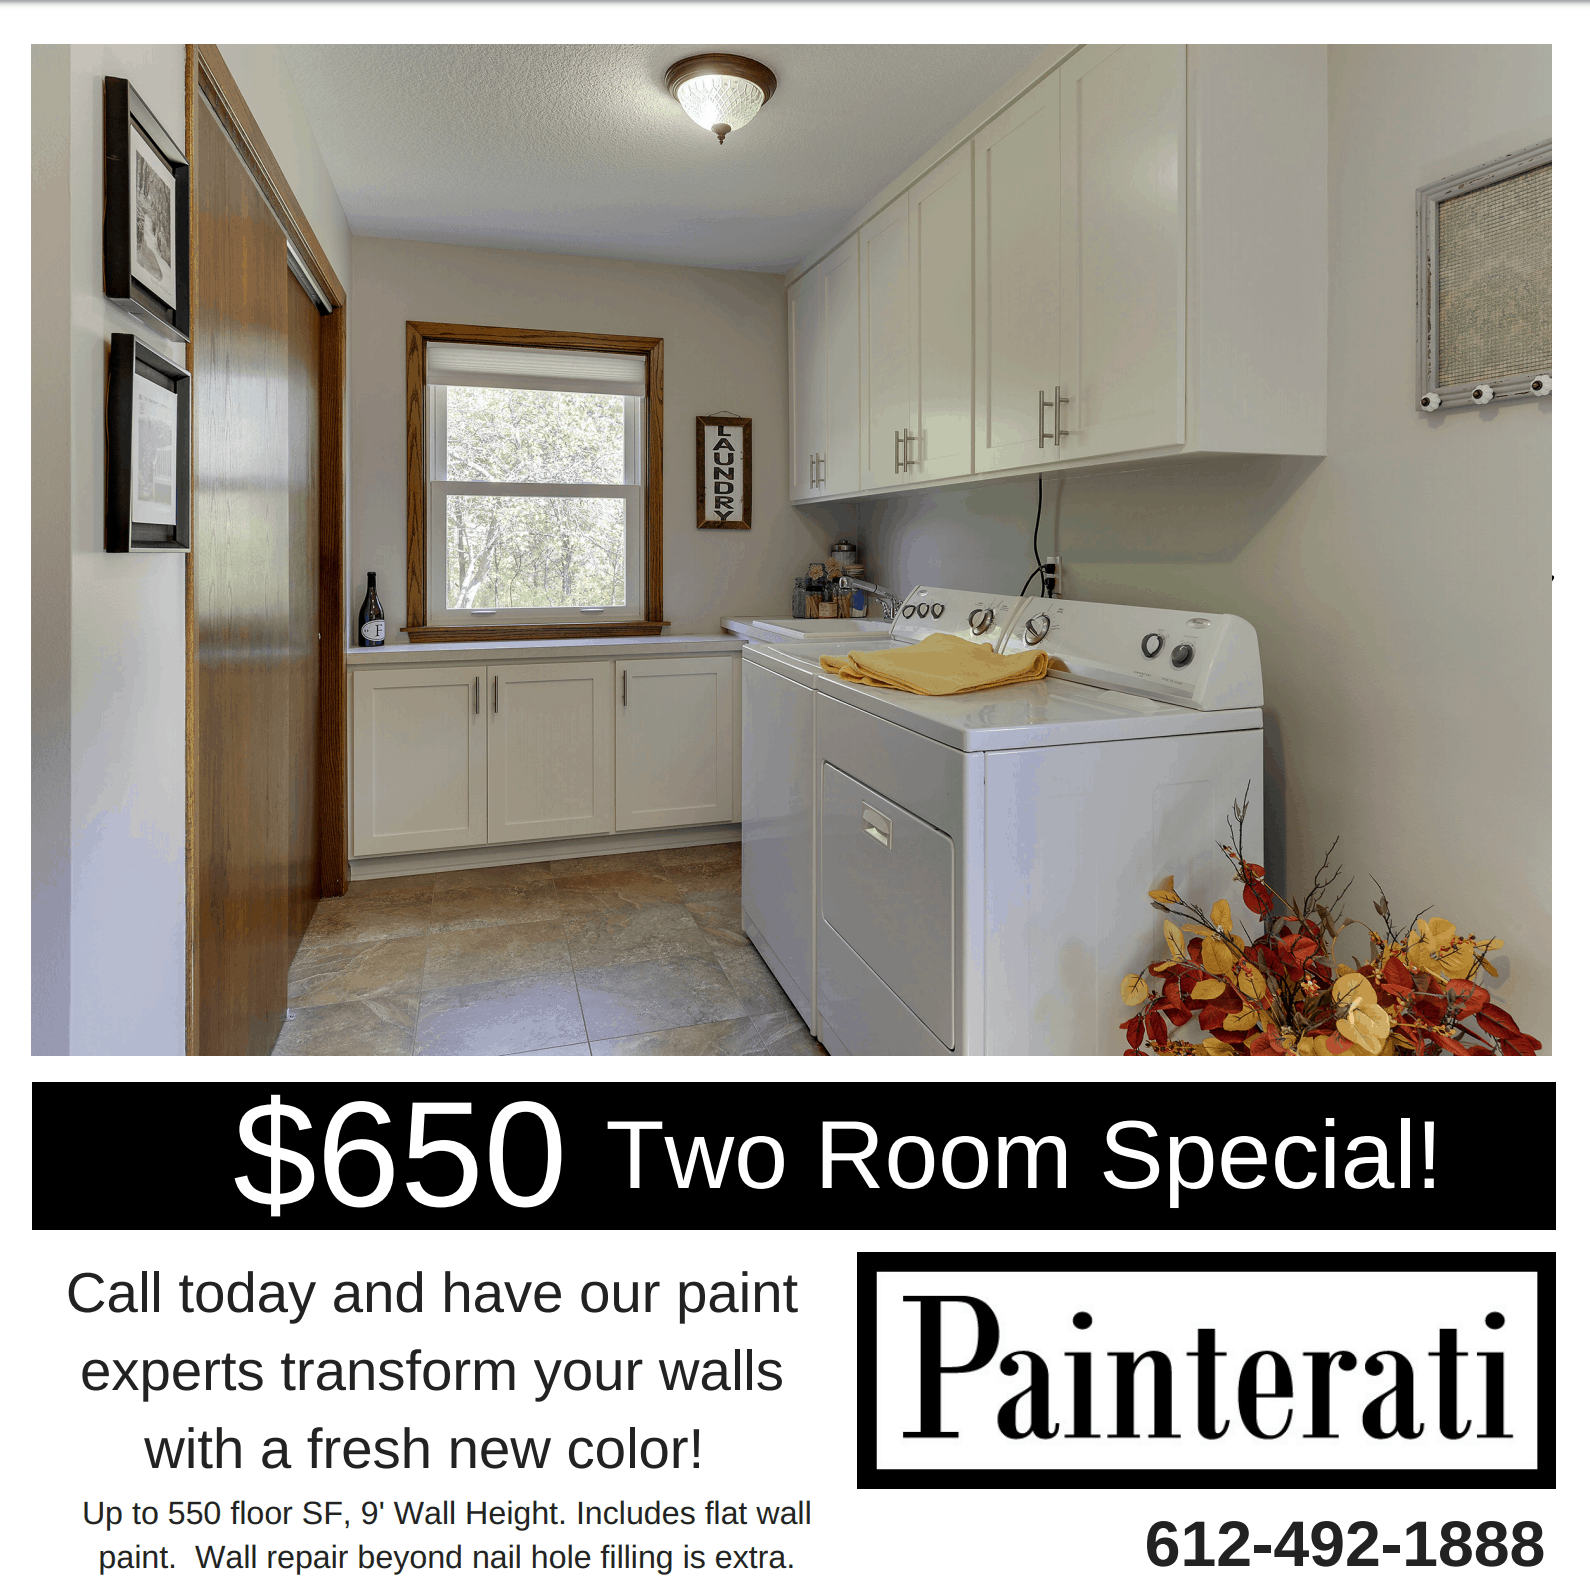 Two Room Special!